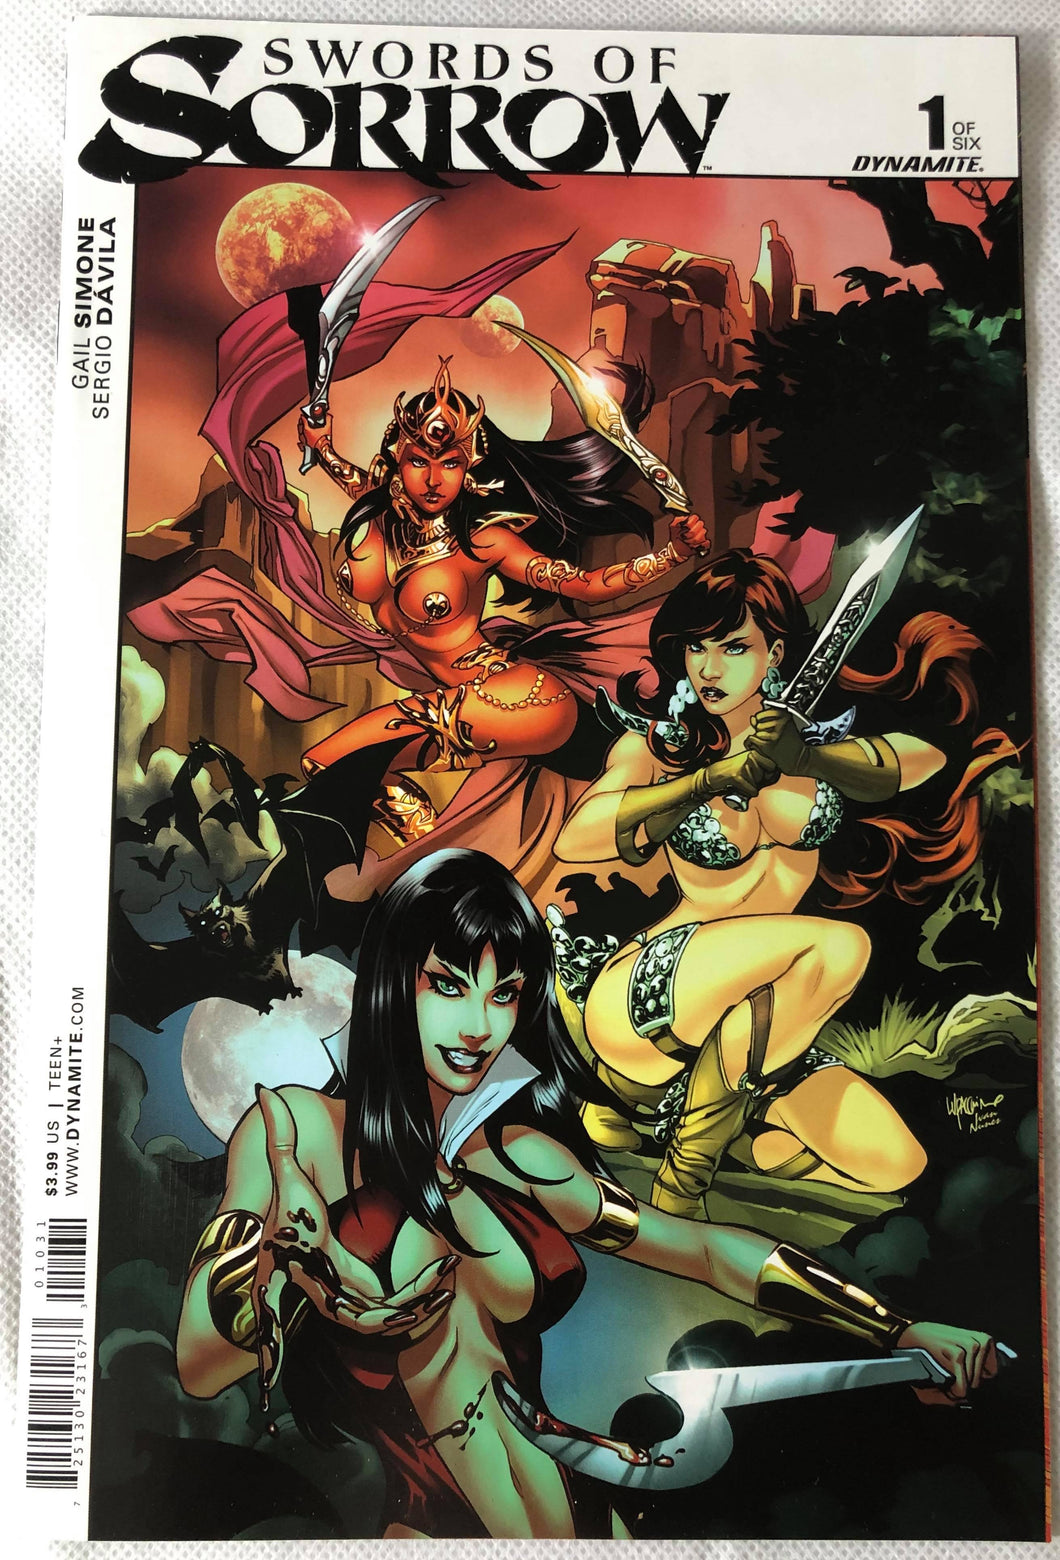 Swords of Sorrow #1 - Demize Collectibles LTD